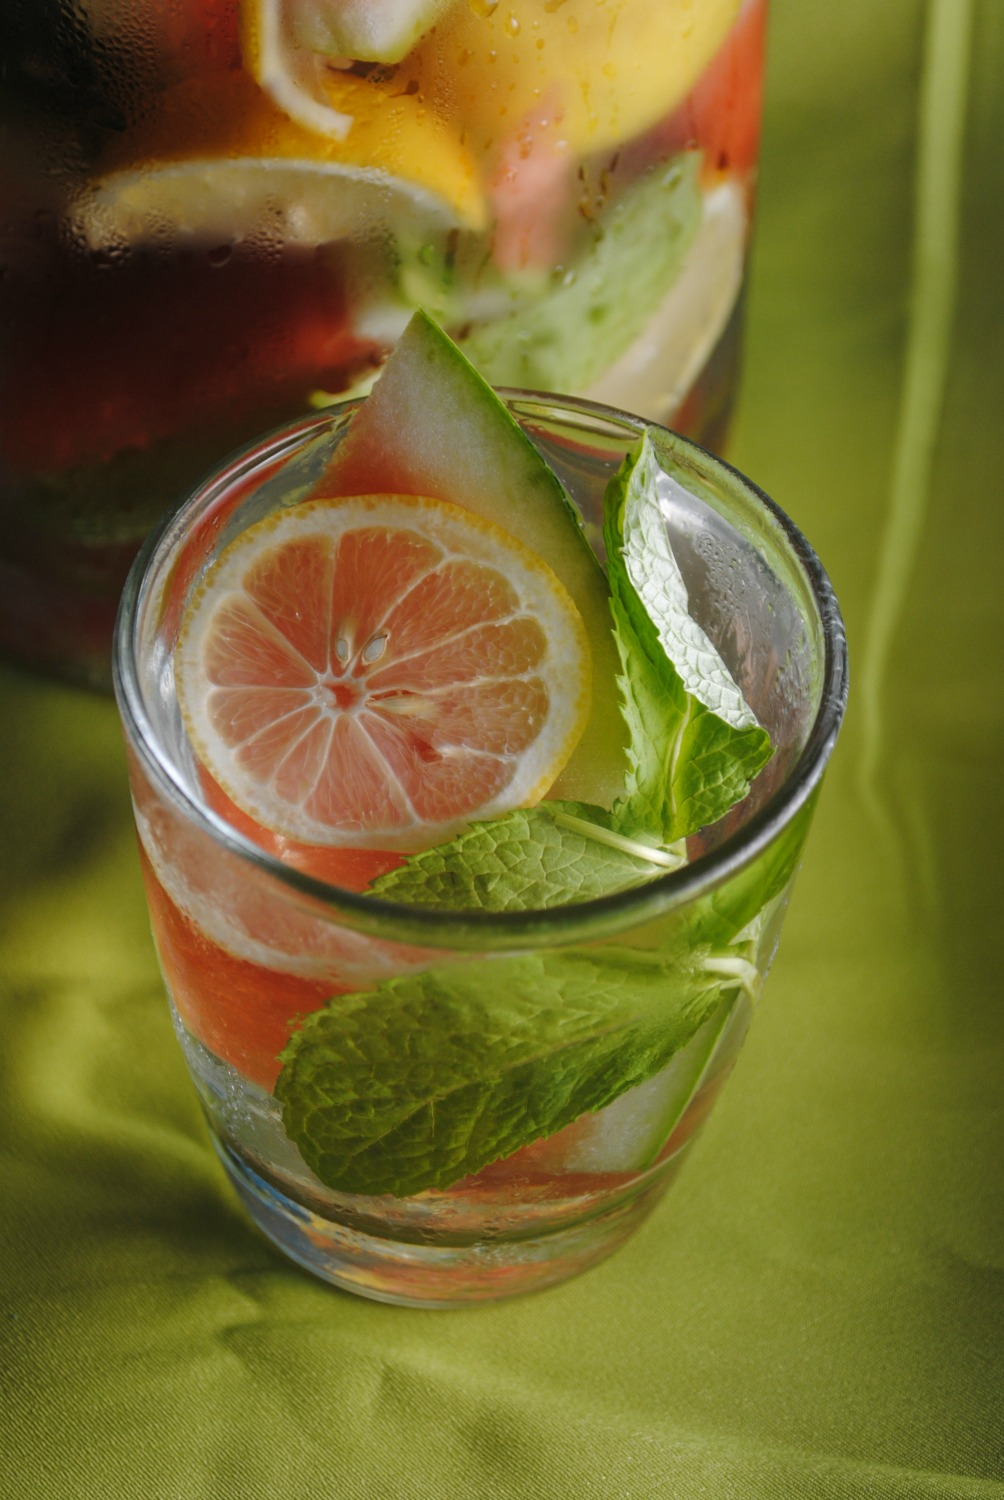 watermelon-mint-lemon-infused-water-VianneyRodriguez